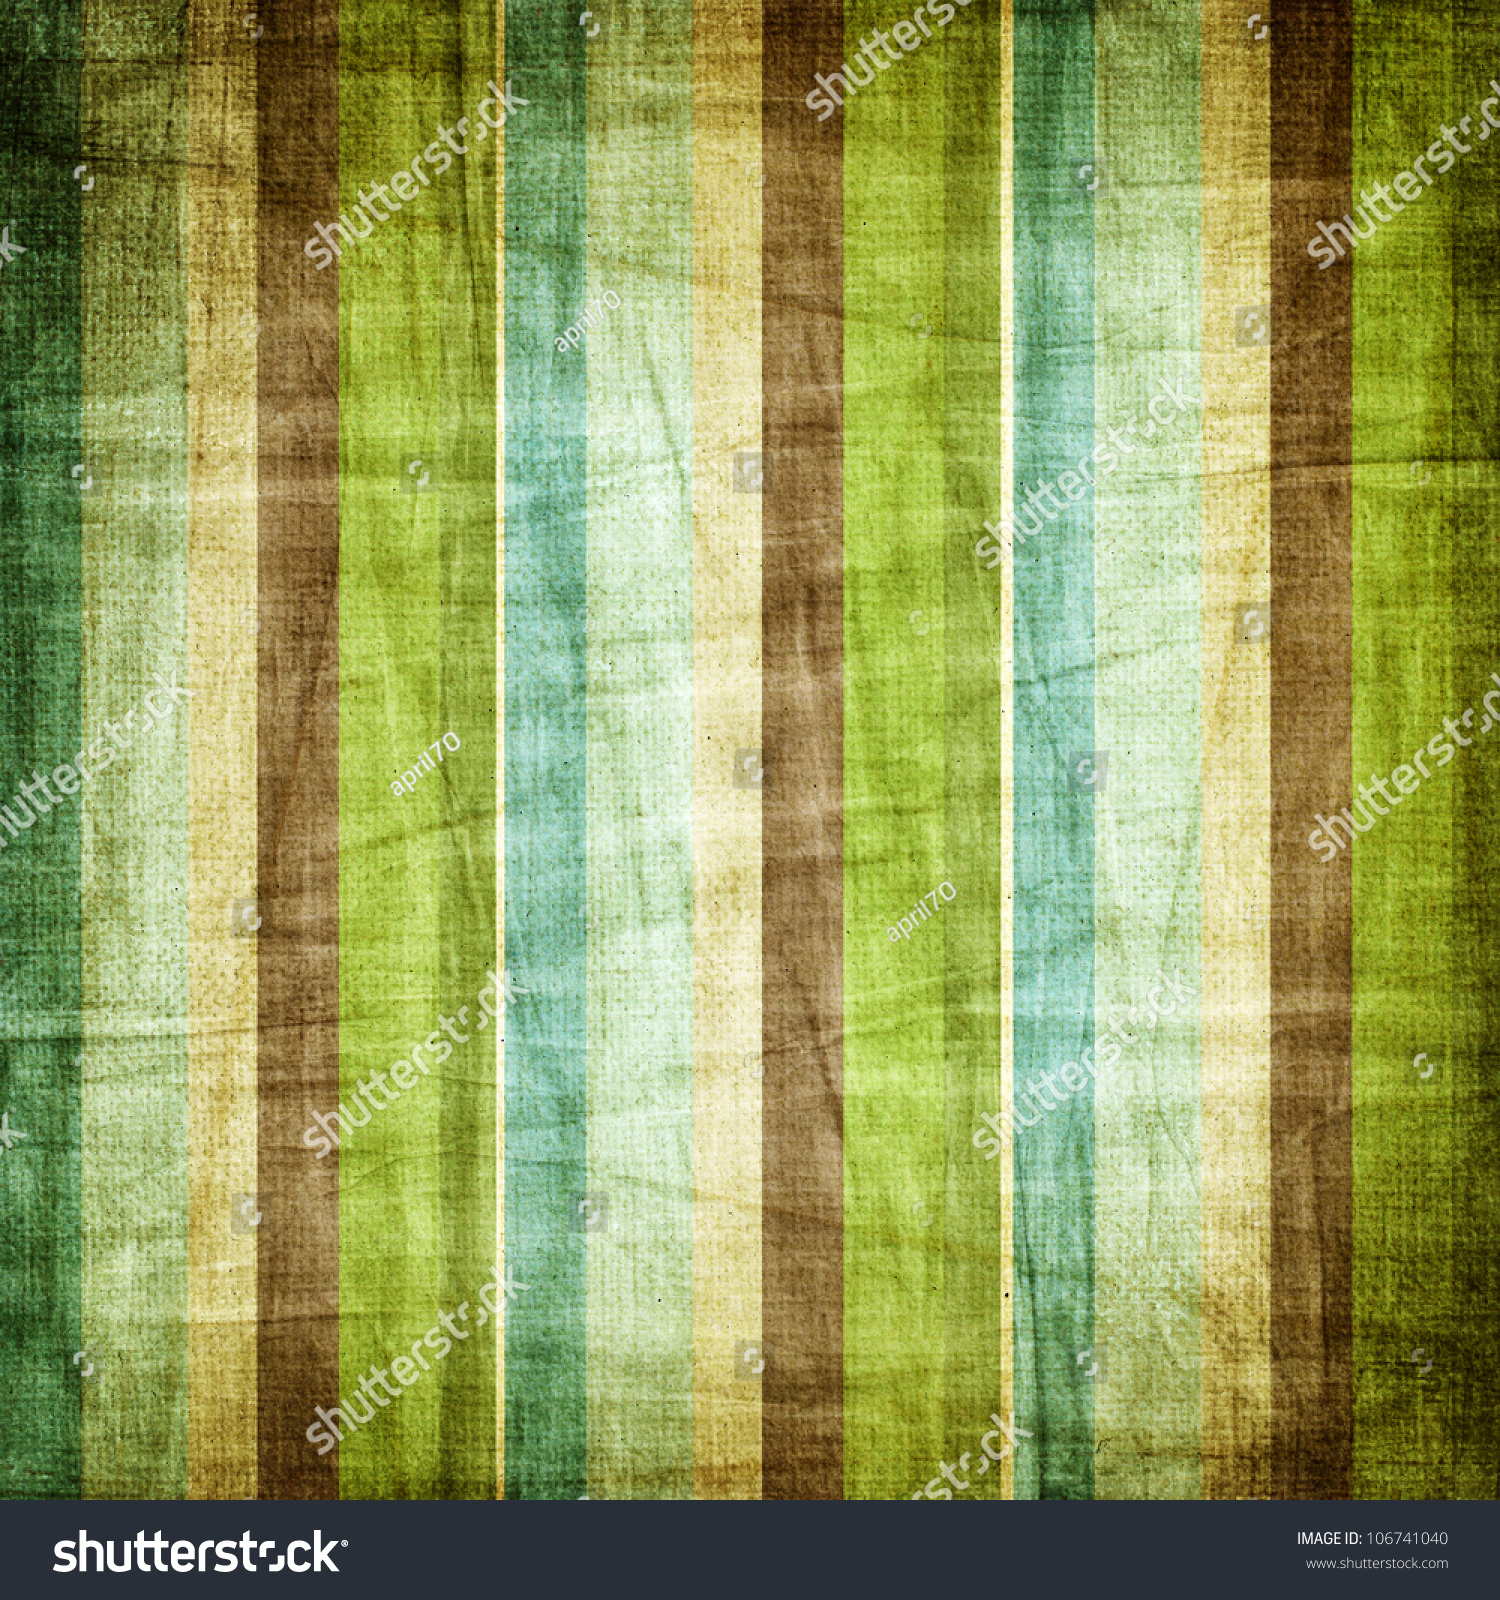 vintage brown blue green shabby colored stock illustration